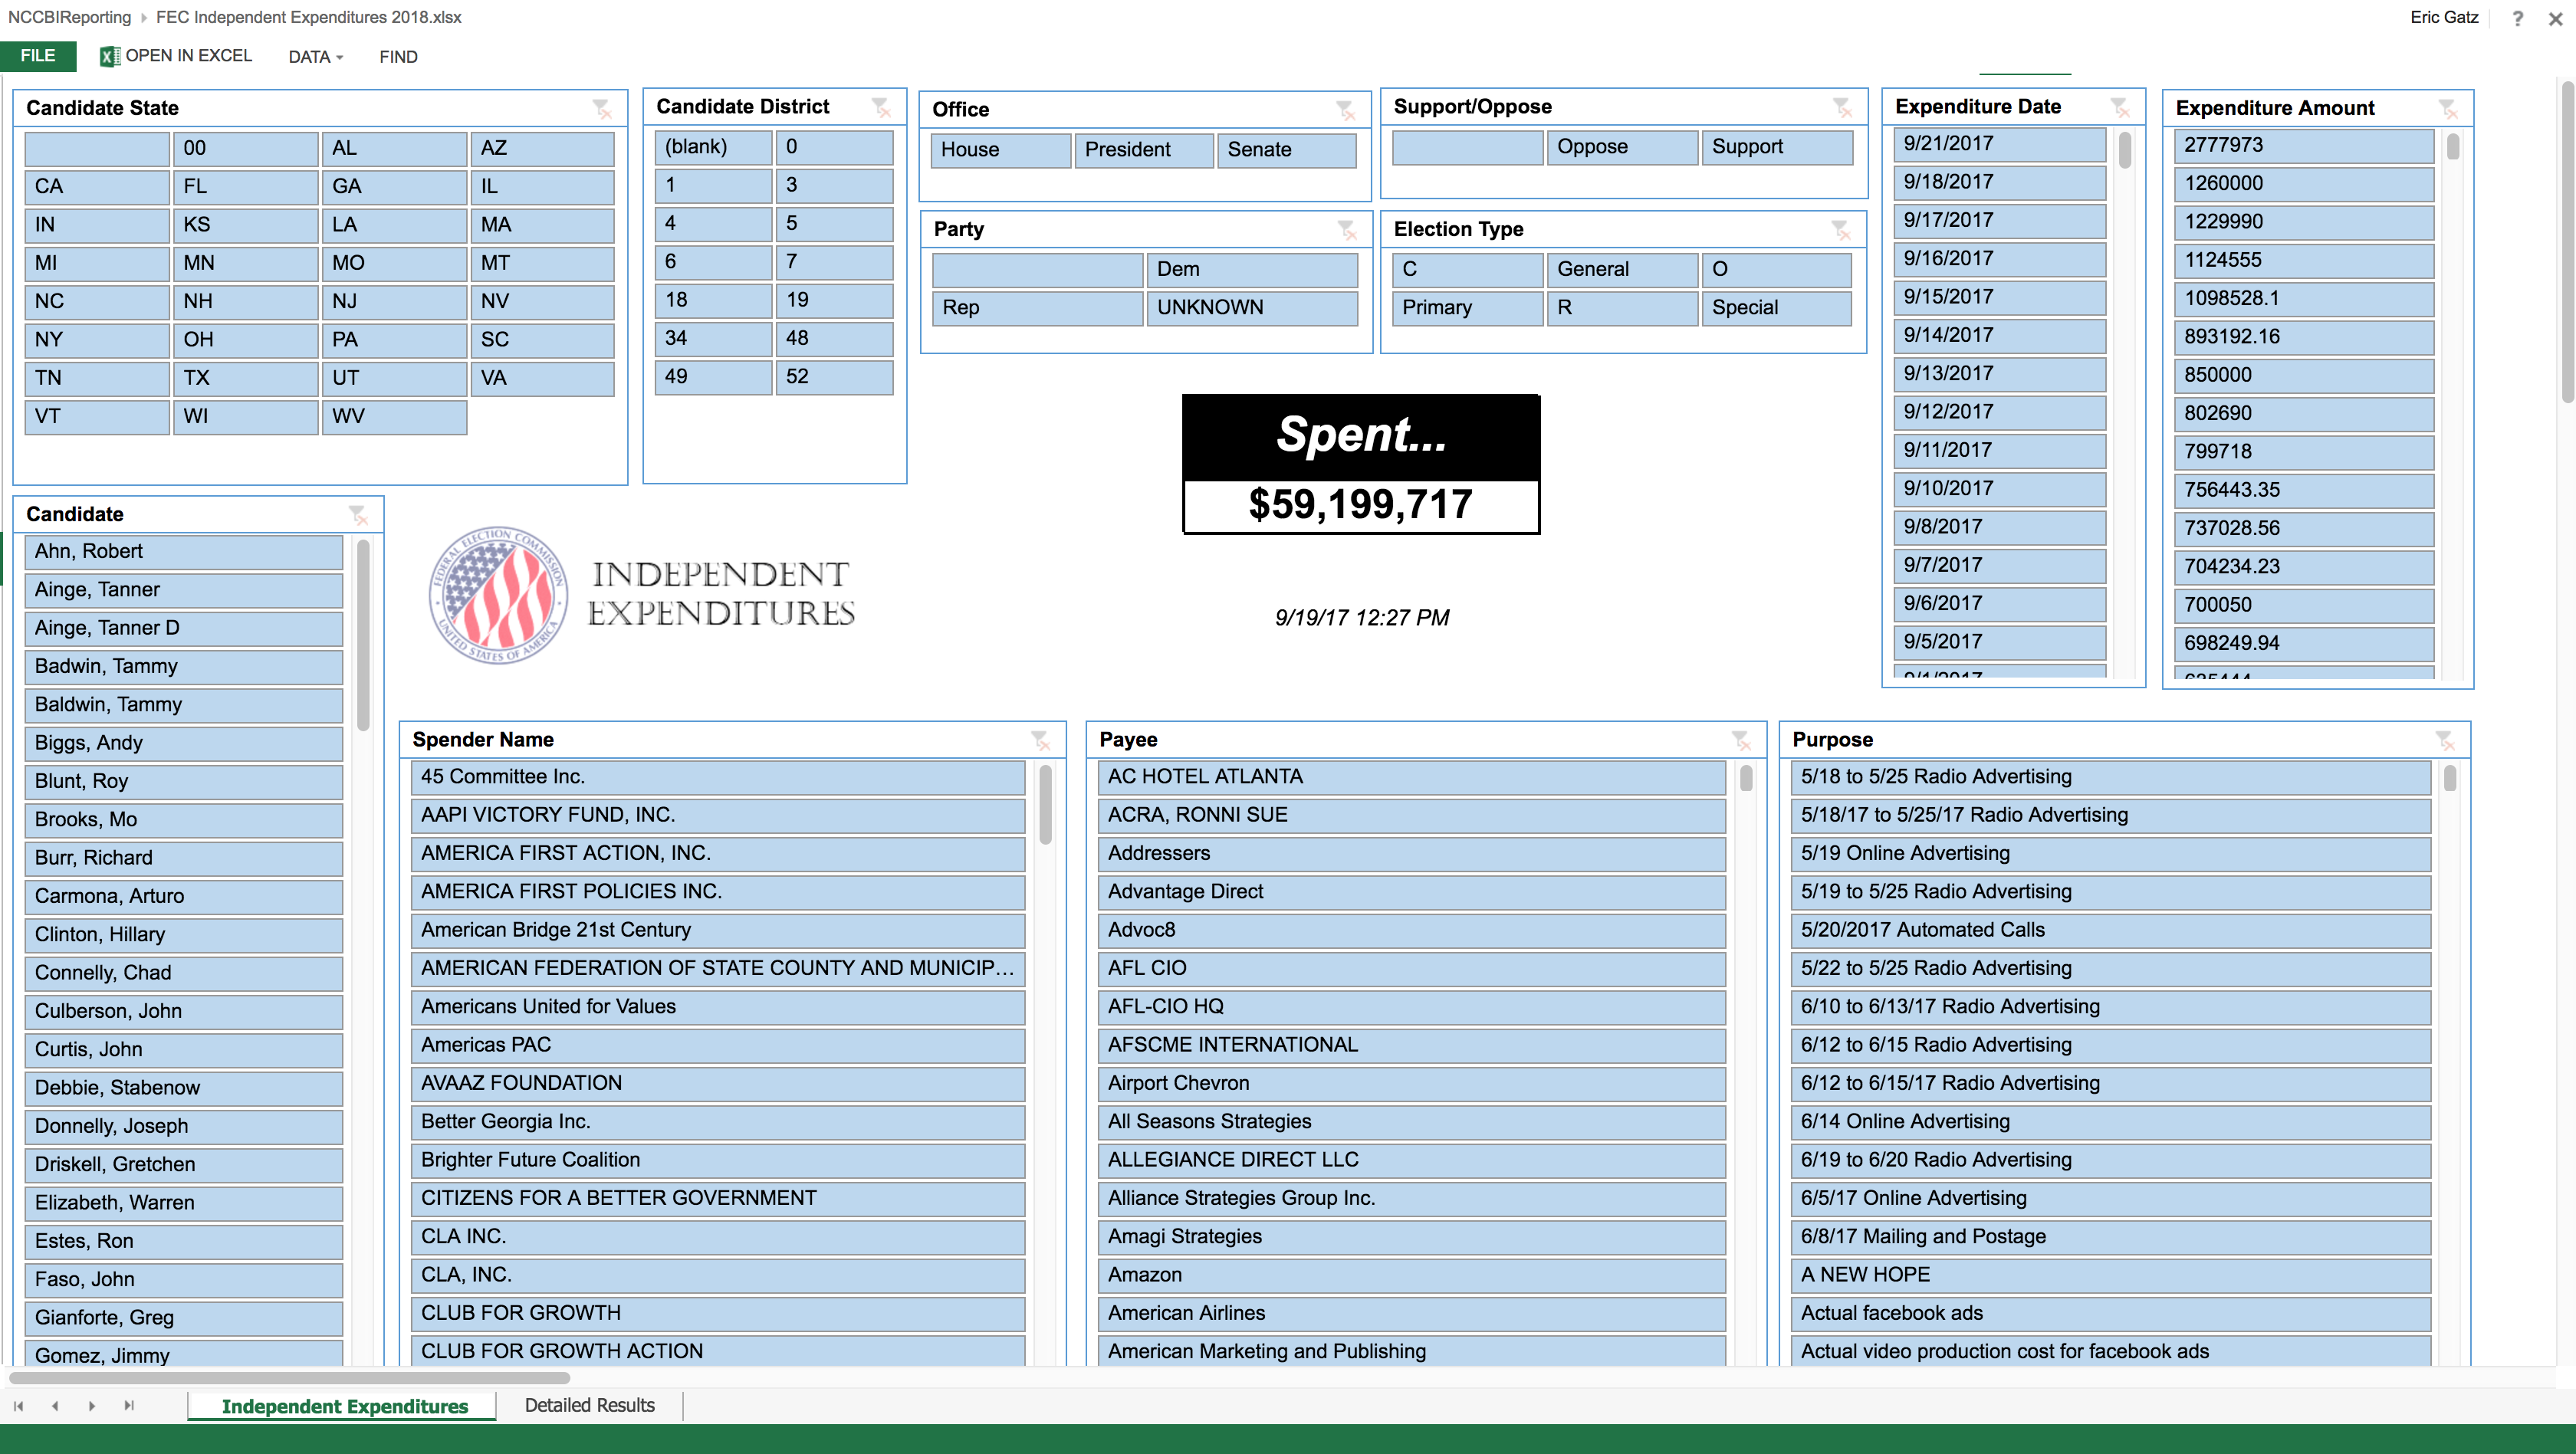 screencapture-sp2013-app-sites-NCCBIReporting-_layouts-15-xlviewer-aspx-1505838516911.png